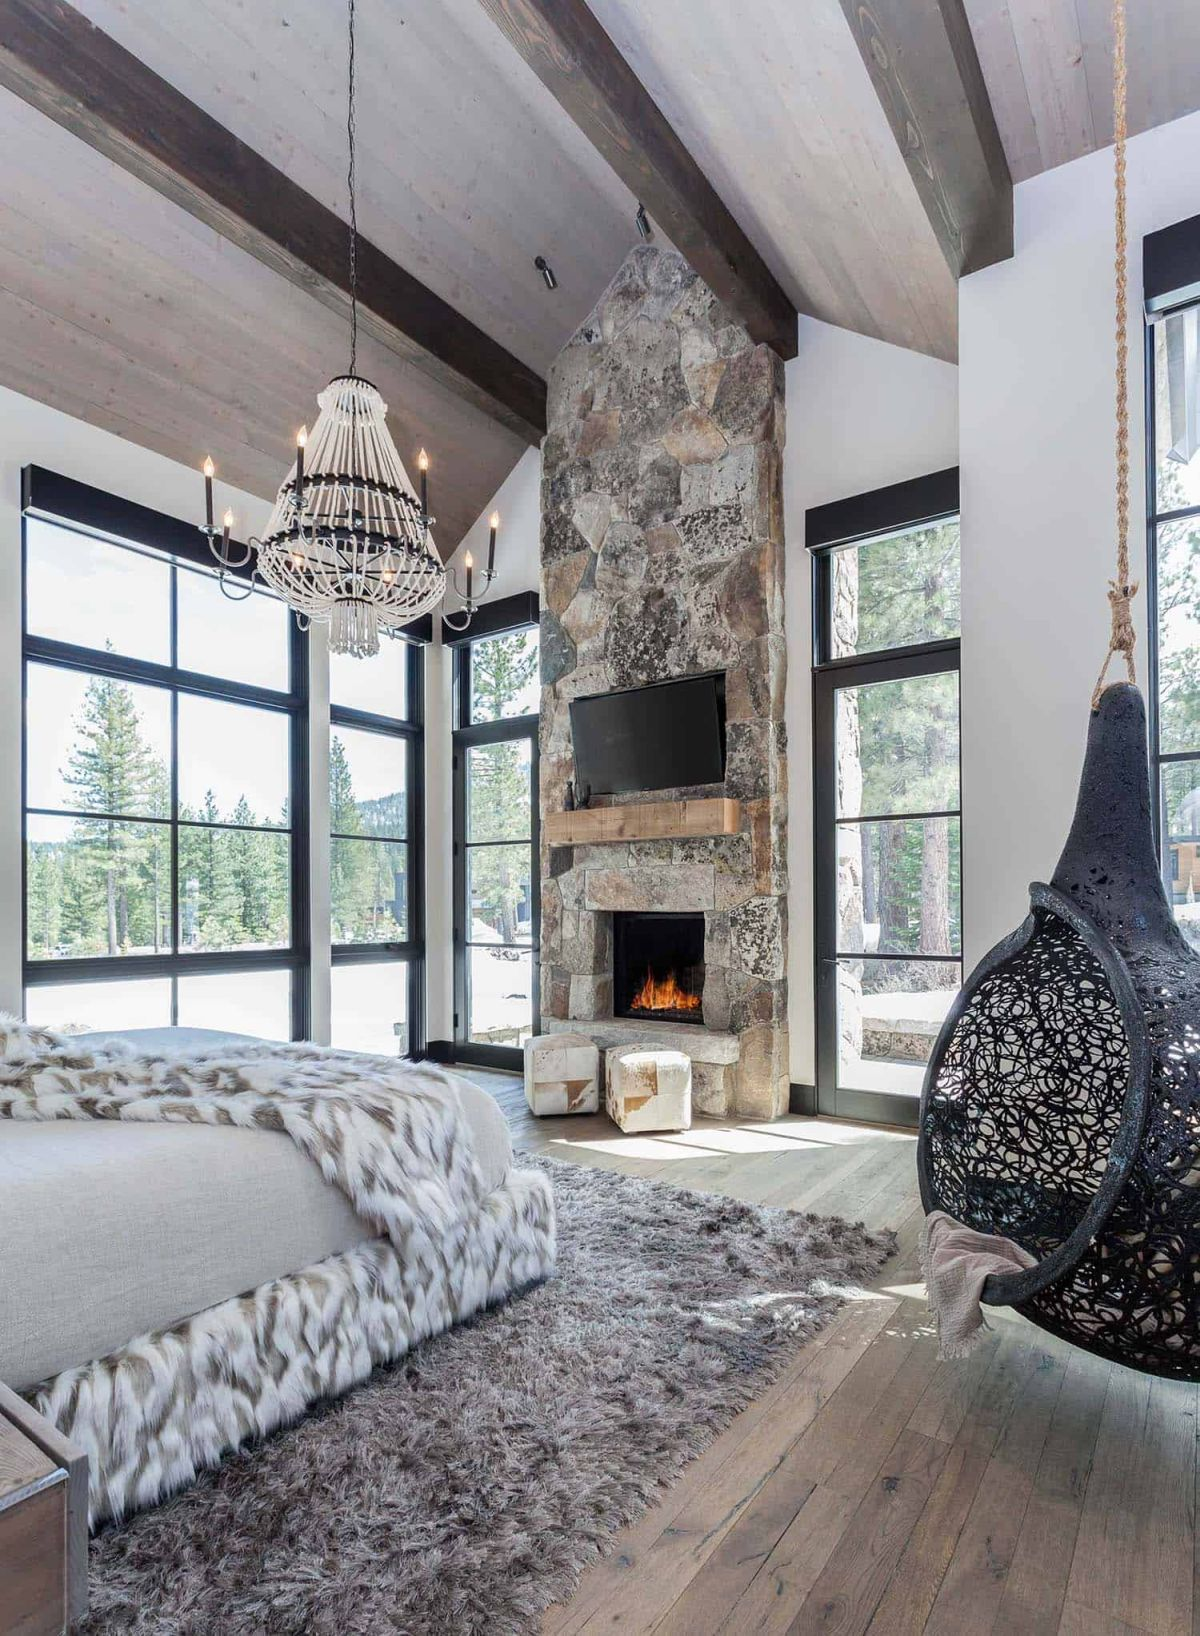 The master bedroom has its own stone fireplace which emphasizes the height of the space in a very nice way